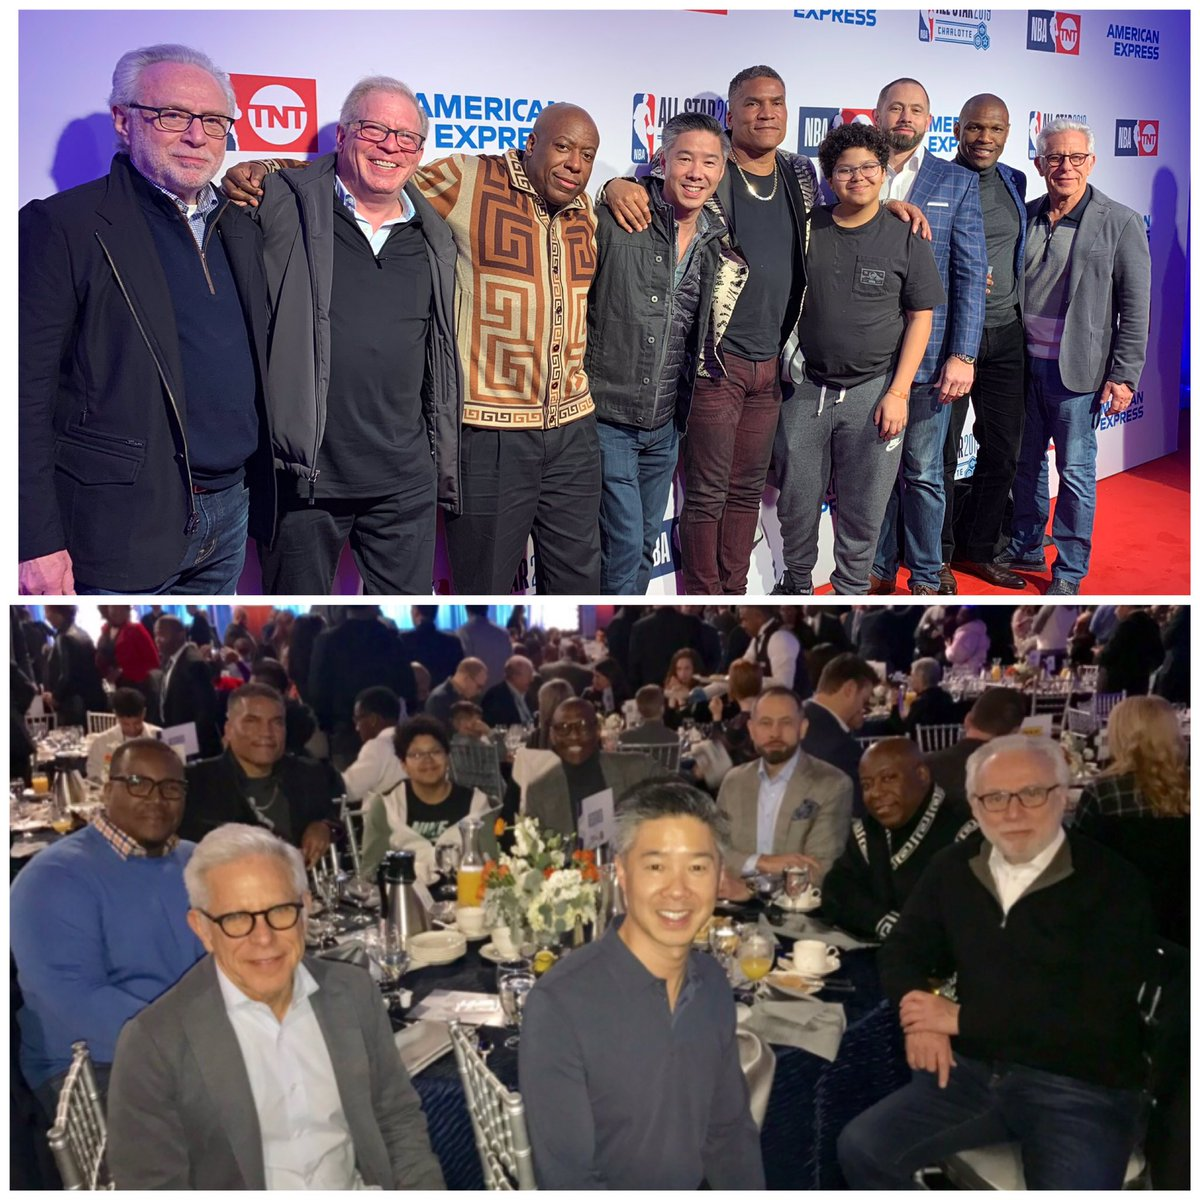 Thanks to the City of Charlotte and the @NBA for organizing an excellent @NBAAllStarAllStar weekend. The 🐺 pack really enjoyed. We return now to our regularly scheduled work. See you later today @CNNSitRoomin the  5-7PM ET